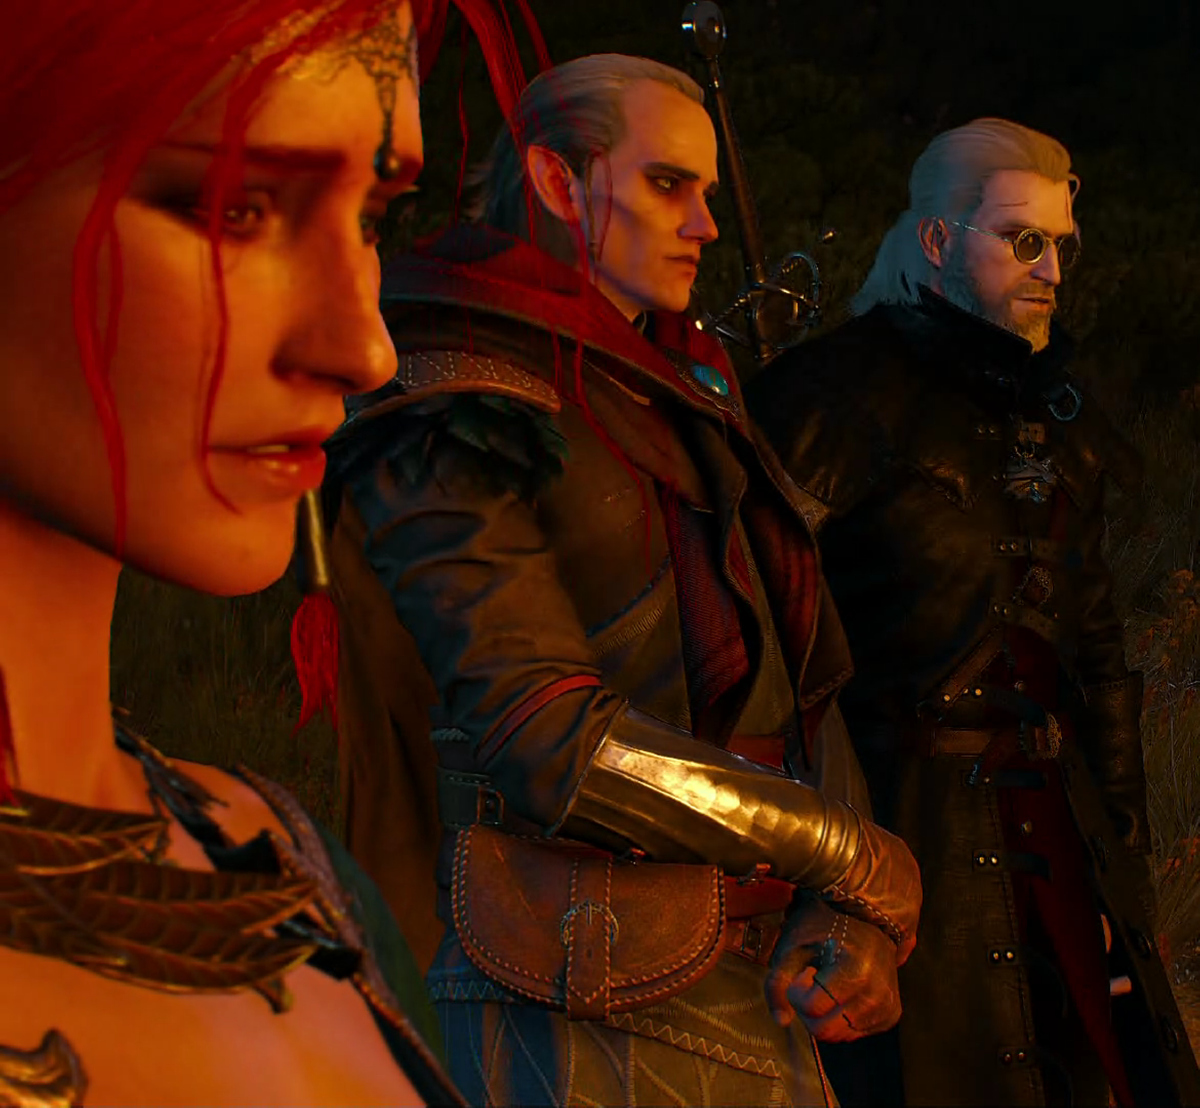 Avallac'h, Geralt, and Triss at Vesemir's funeral